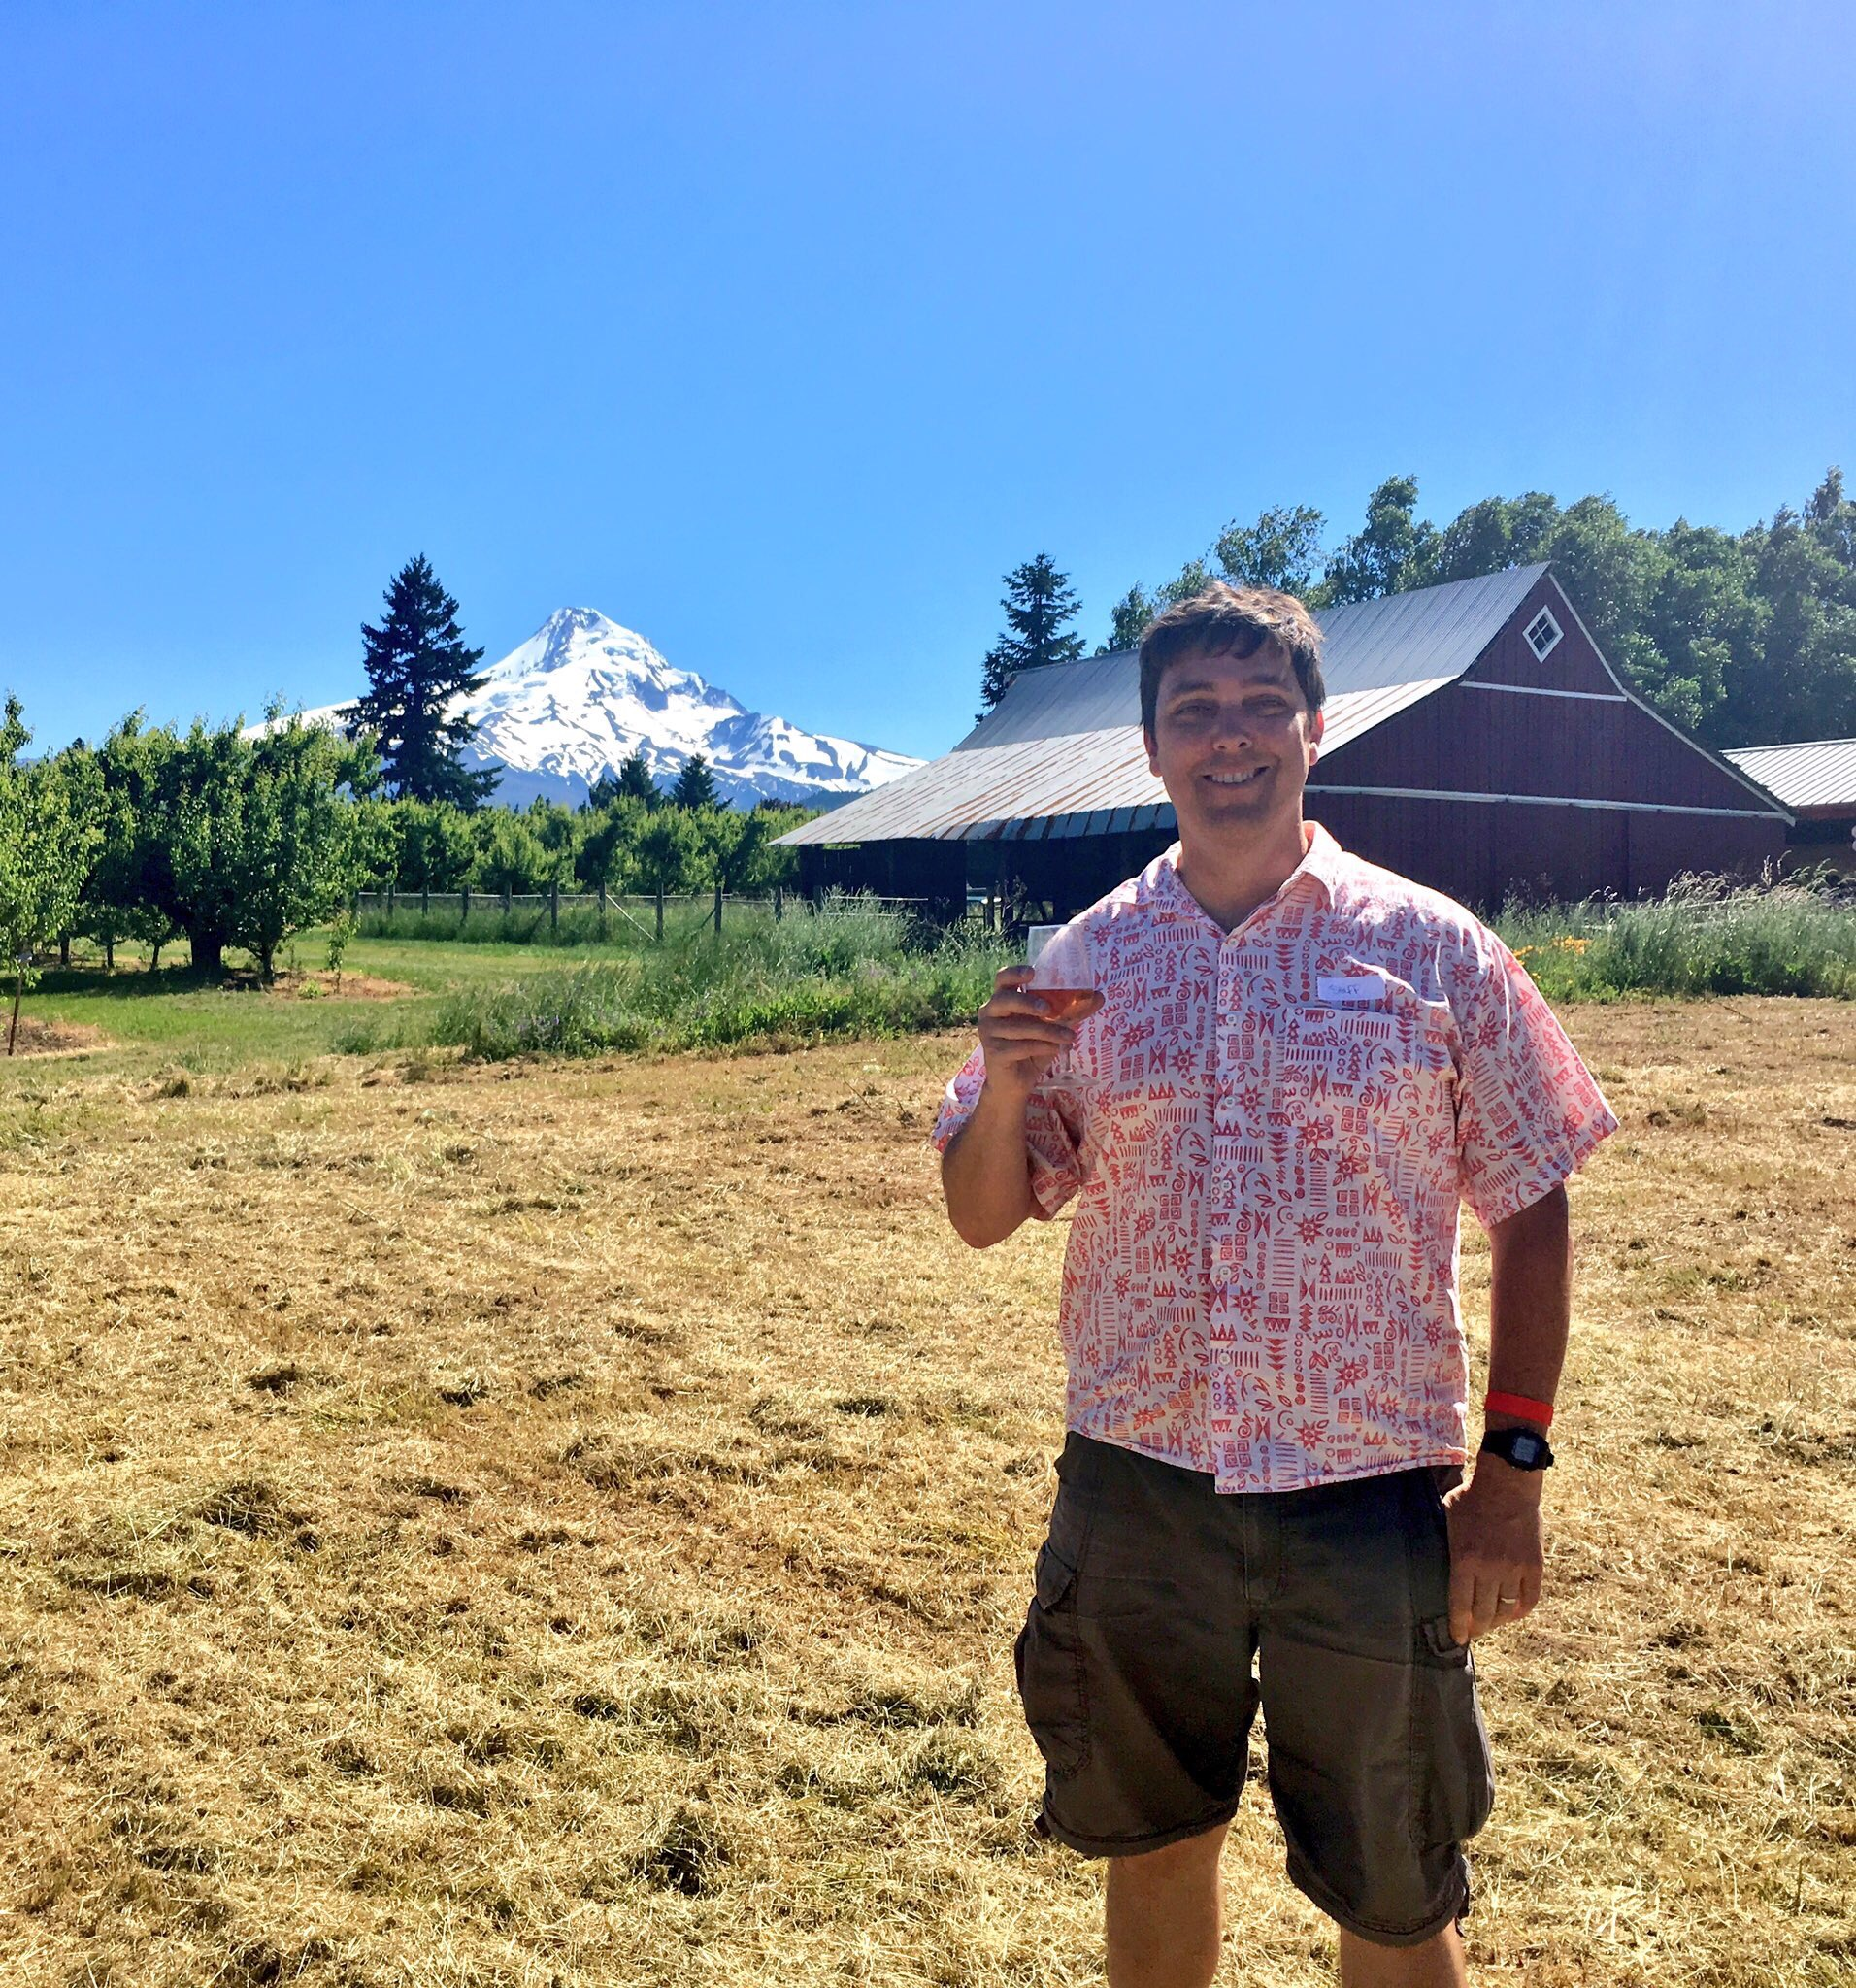 Brian Yeager during the 2nd Annual Kriekfest held in Parkdale, Oregon our beautiful Mt. Hood in the background. (photo by Cat Stelzer)